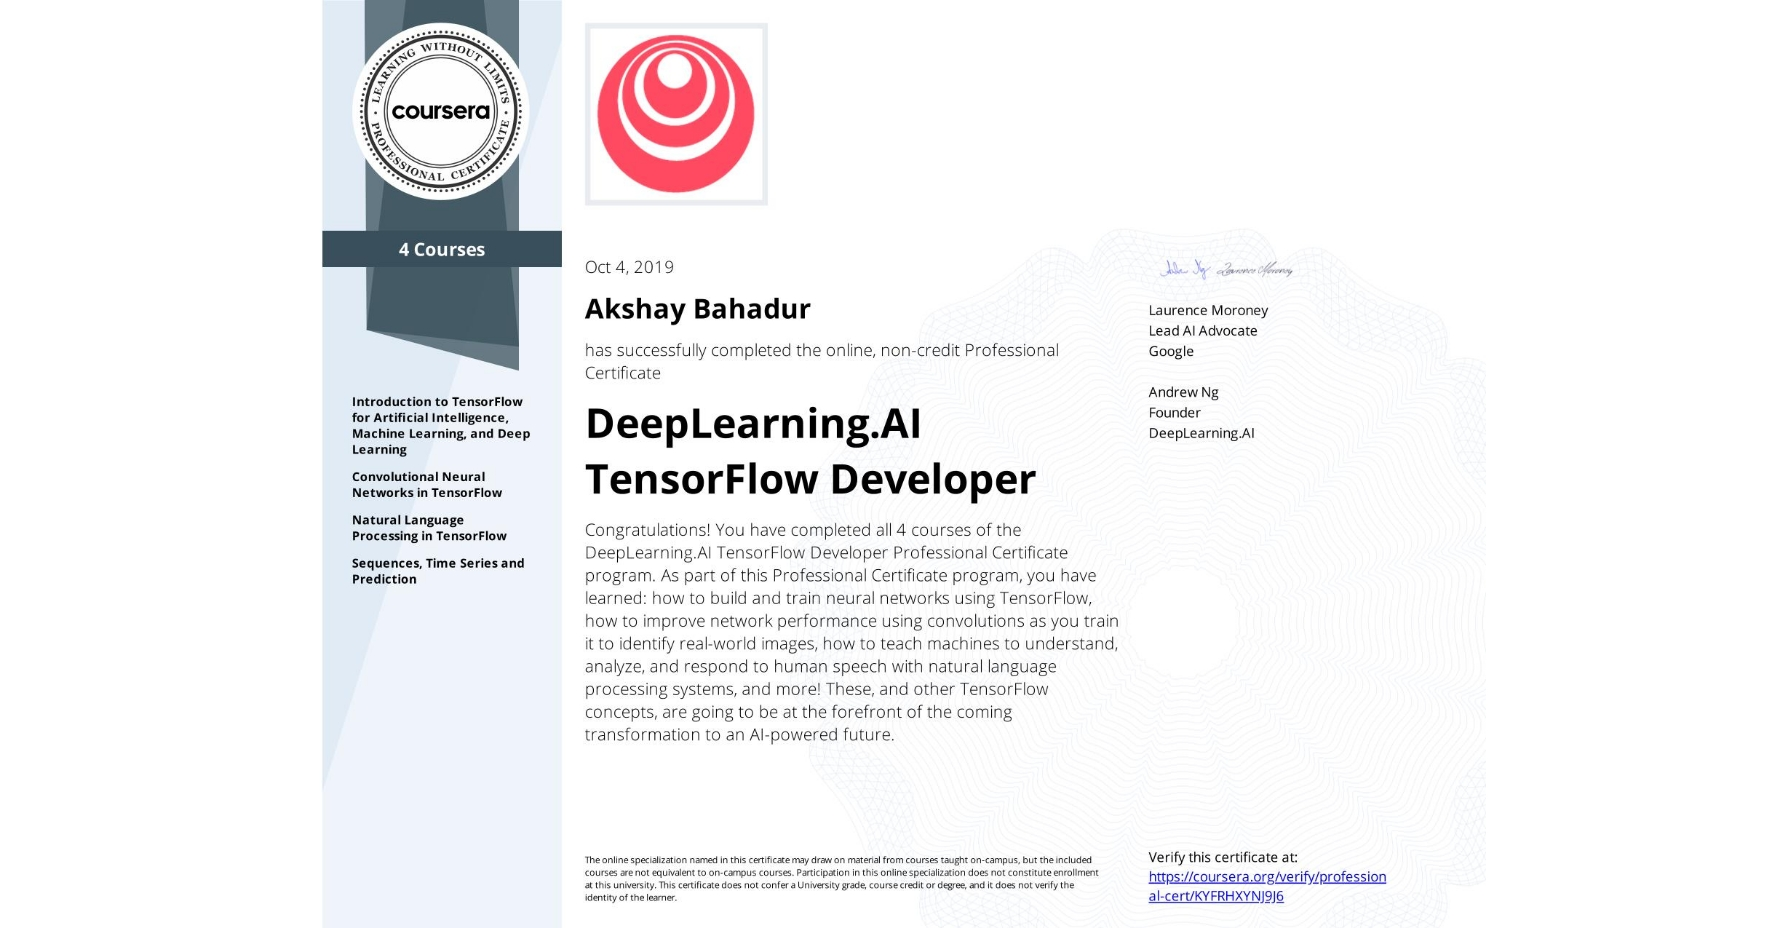 View certificate for Akshay Bahadur, DeepLearning.AI TensorFlow Developer, offered through Coursera. Congratulations! You have completed all 4 courses of the DeepLearning.AI TensorFlow Developer Professional Certificate program.   As part of this Professional Certificate program, you have learned: how to build and train neural networks using TensorFlow, how to improve network performance using convolutions as you train it to identify real-world images, how to teach machines to understand, analyze, and respond to human speech with natural language processing systems, and more!  These, and other TensorFlow concepts, are going to be at the forefront of the coming transformation to an AI-powered future.